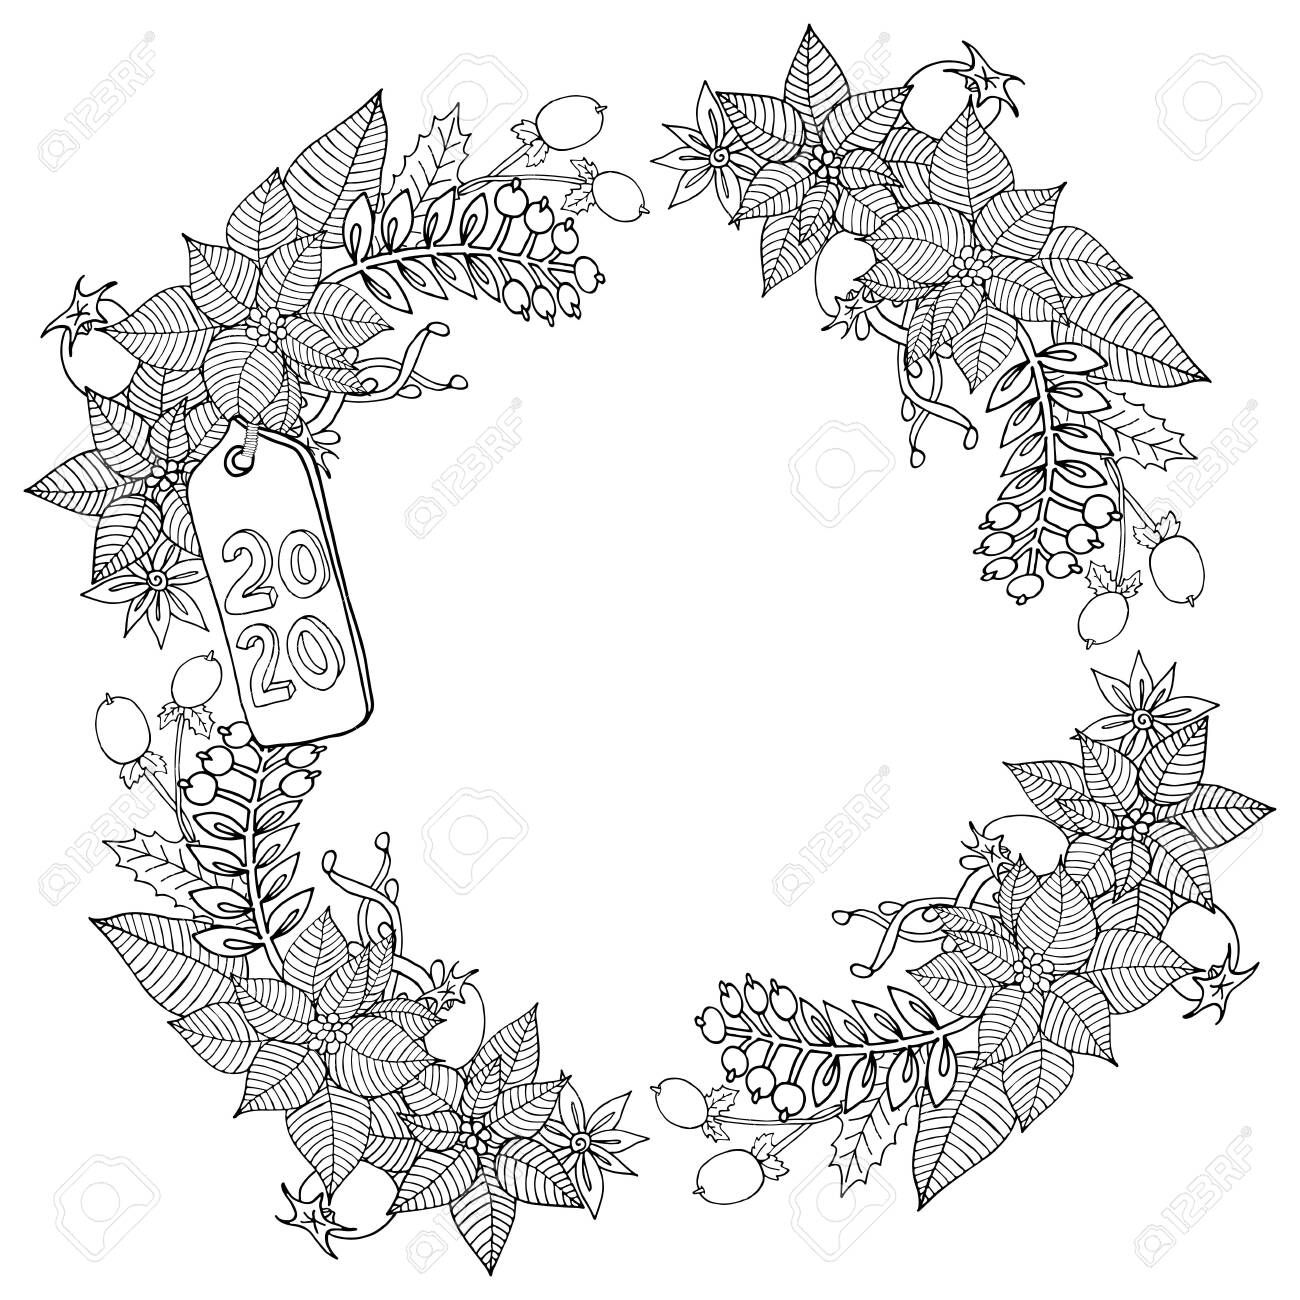 Christmas 2020 frame or wreath coloring book or page. Vector New Year 2020 artwork. Floral, ornate, decorative, tribal, decor, Christmas. Holiday concept. Christmas coloring book page - 132089207